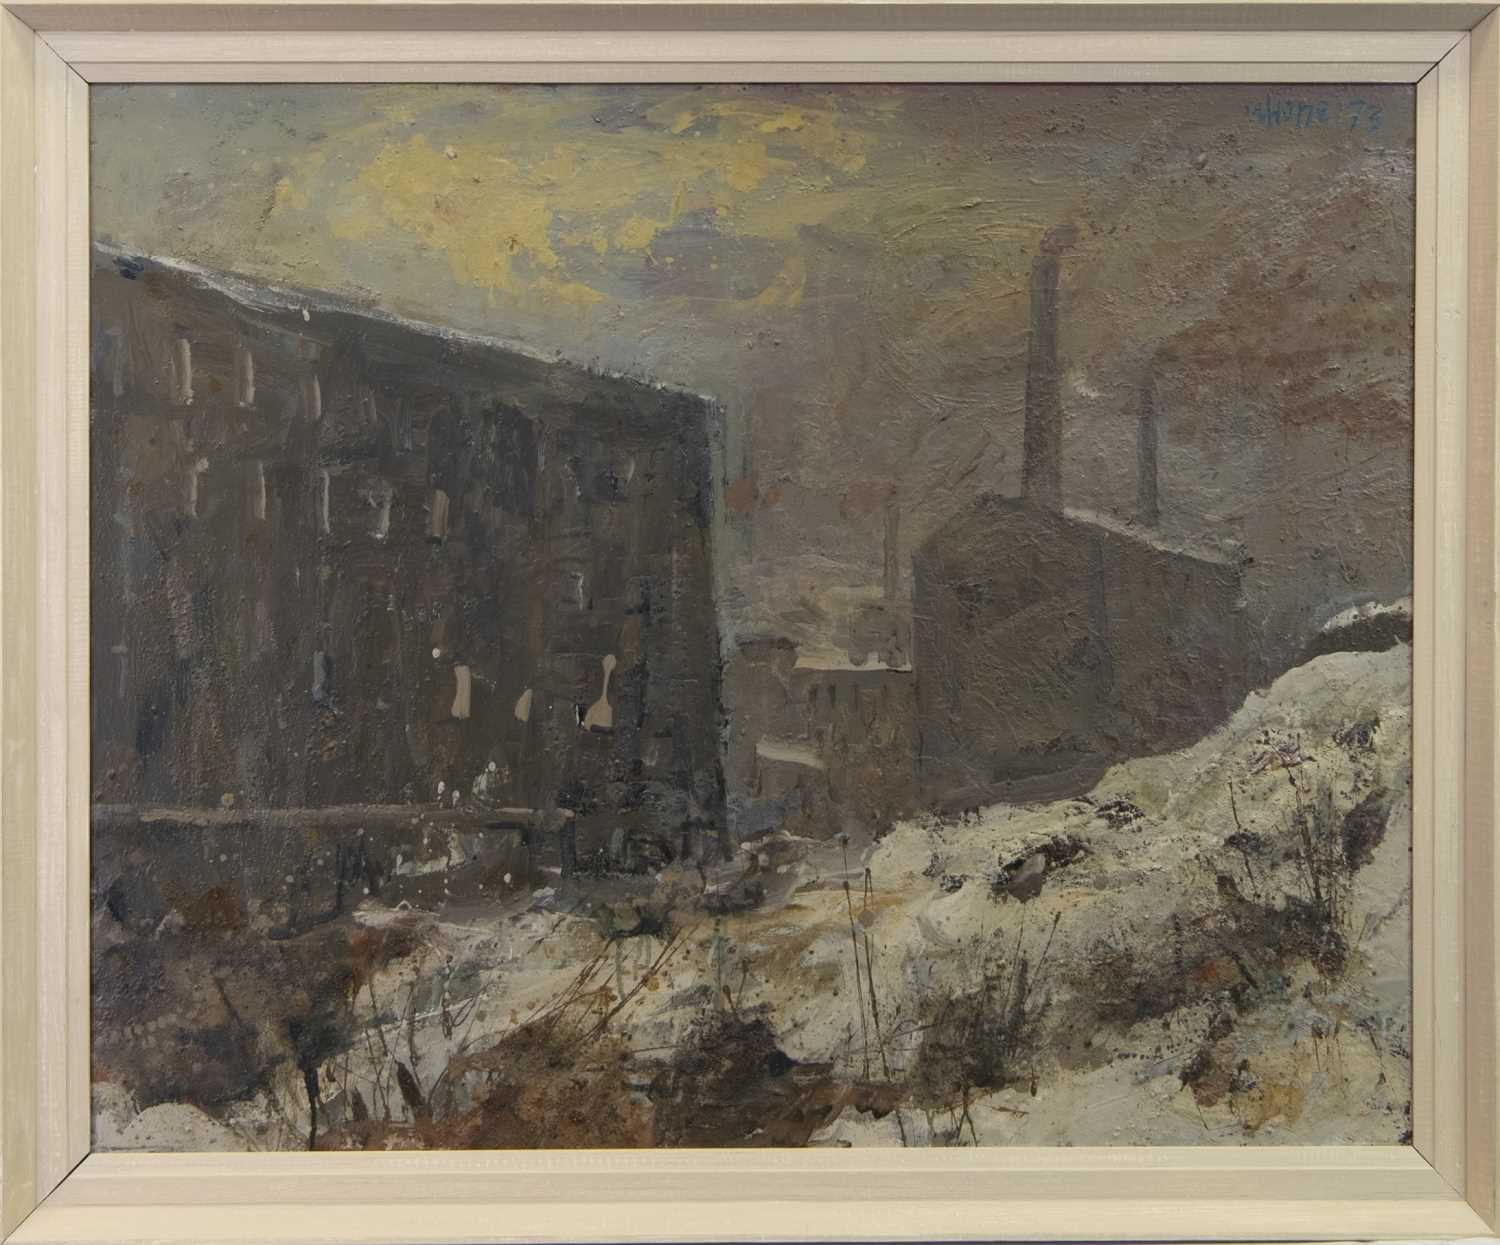 Lot 23 - FACTORIES IN THE SNOW, A MAJOR WORK BY HERBERT WHONE